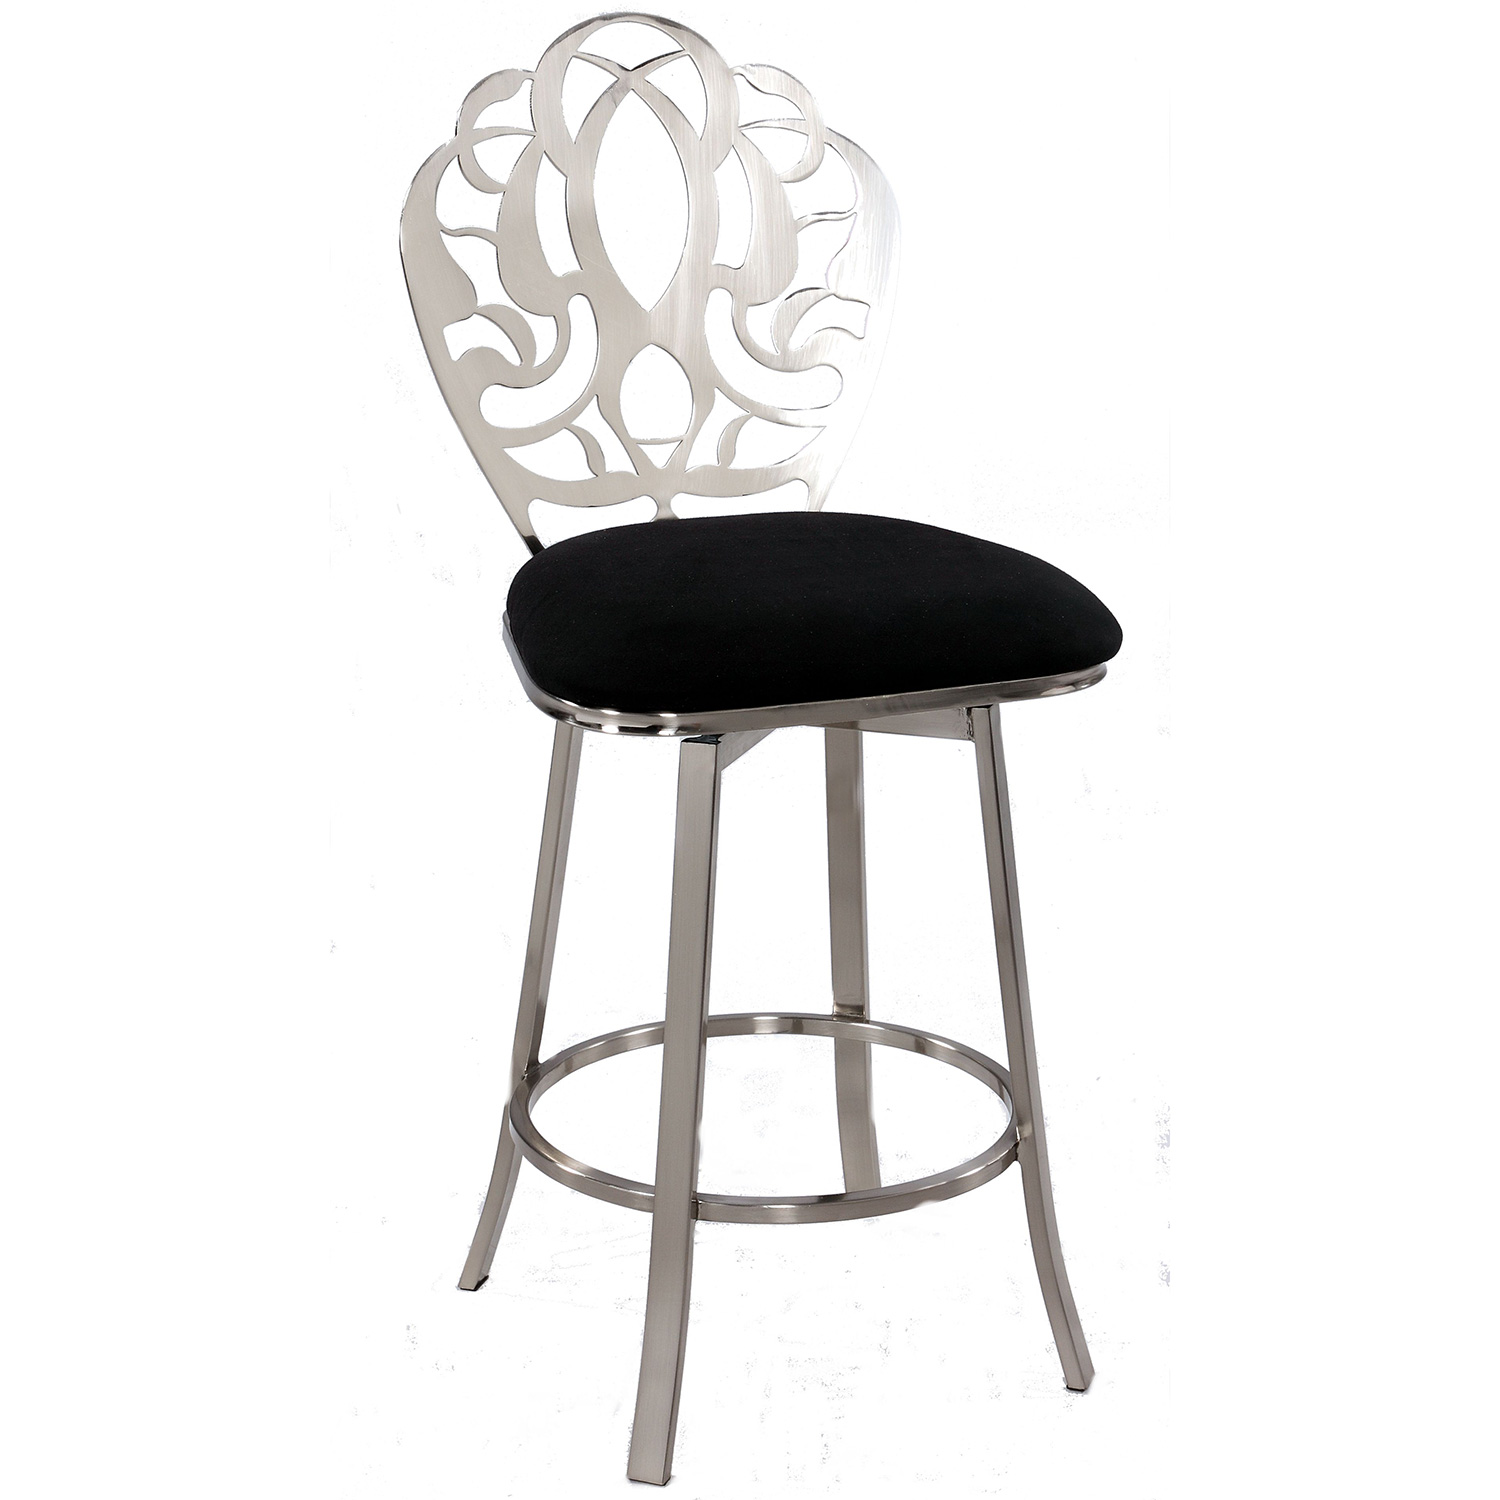 Fantastic Laser Cut Back Memory Back Swivel Counter Stool In Black Microfiber Brushed Nickel By Chintaly Imports Unemploymentrelief Wooden Chair Designs For Living Room Unemploymentrelieforg